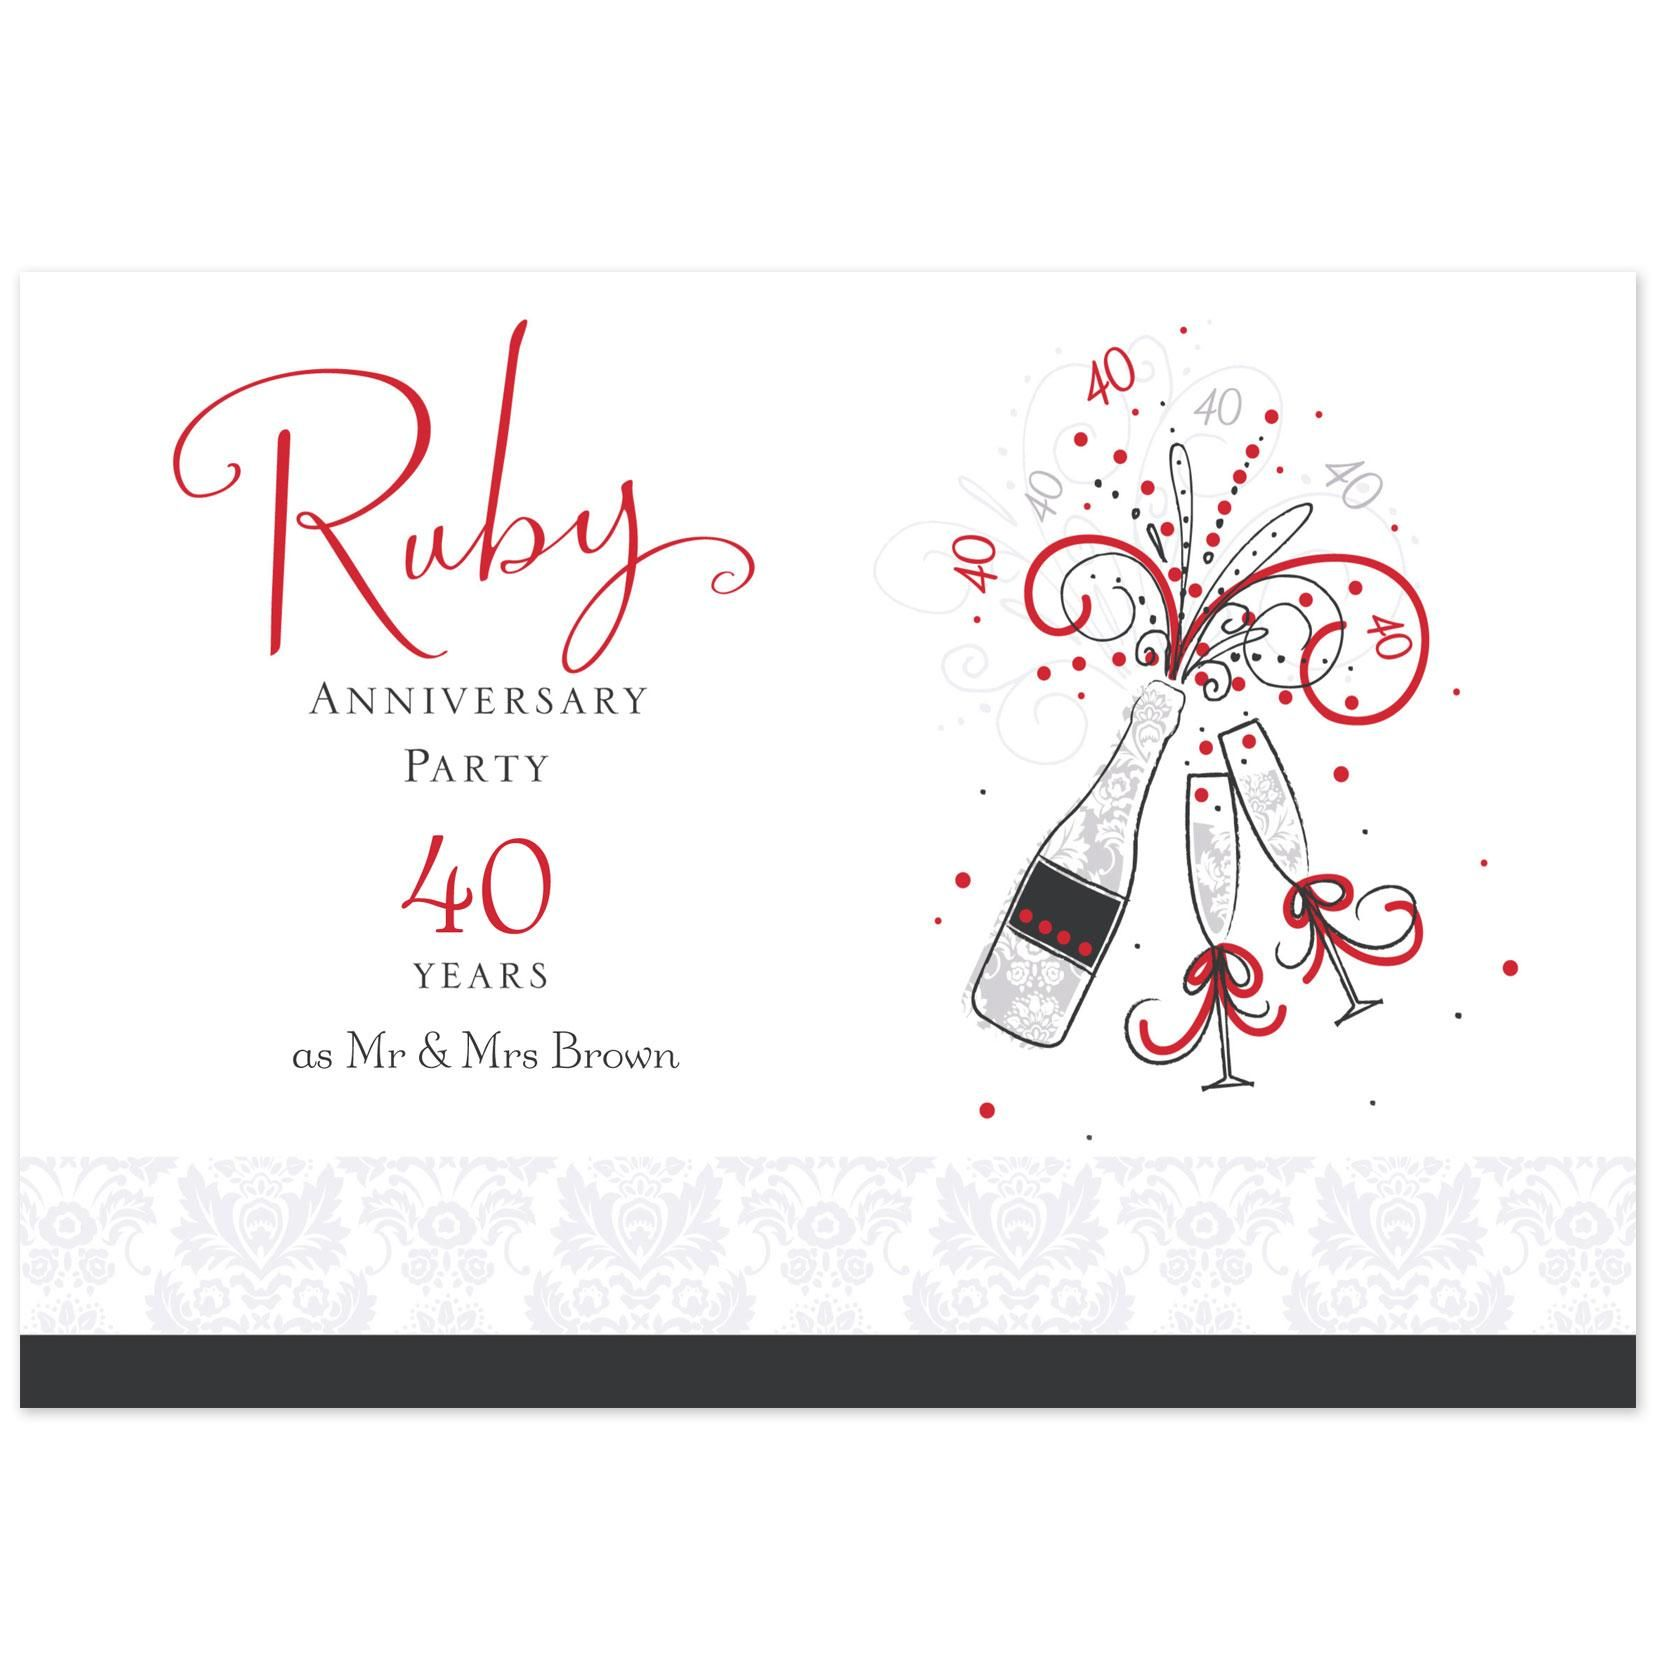 Shop Ruby Anniversary Anniversary Invitations And Anniversaries - Hallmark party invitations templates